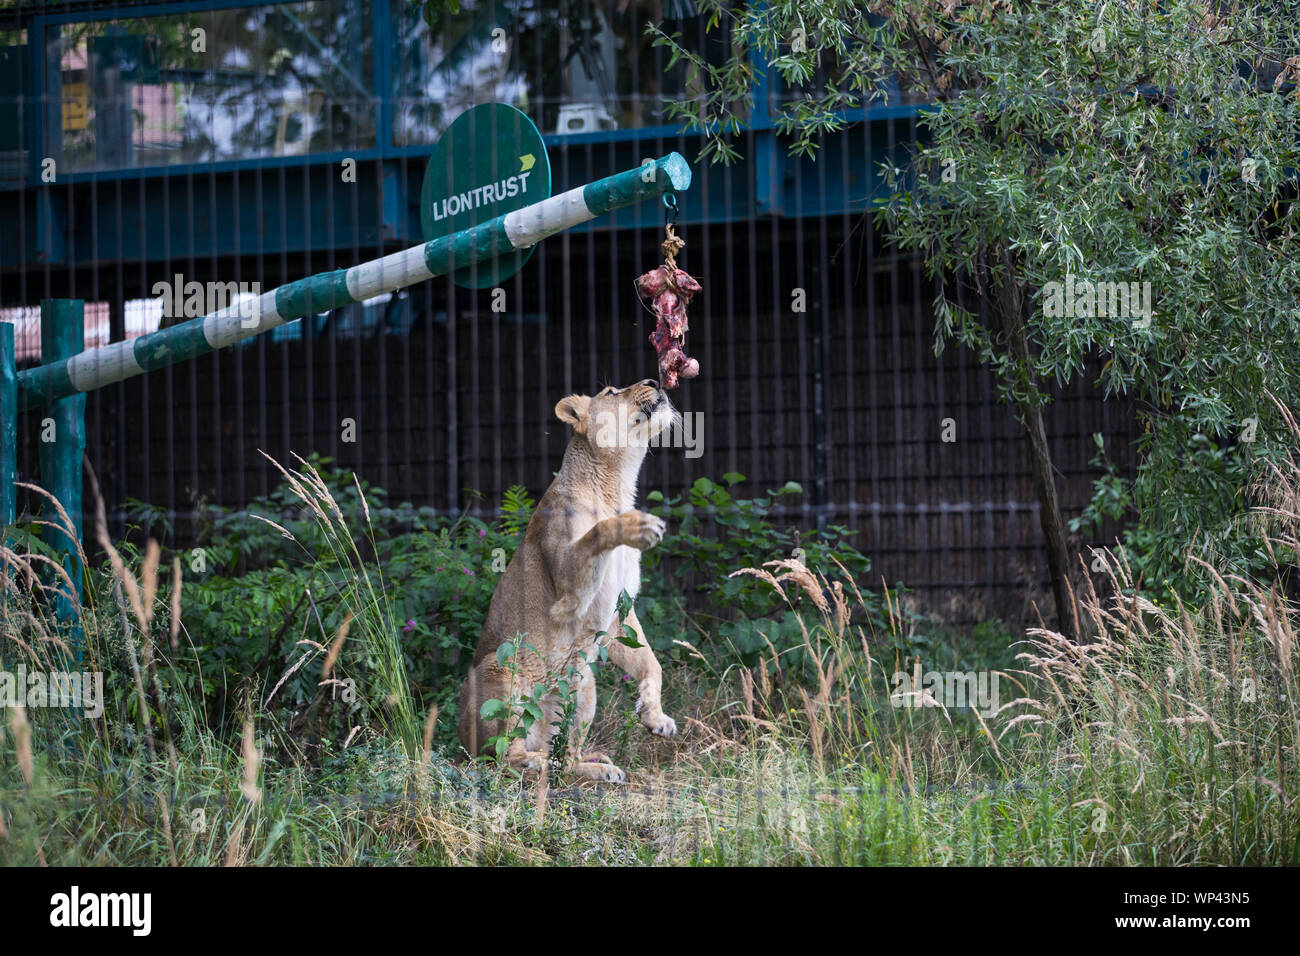 ZSL London Zoo's Asiatic lions given giant 'seesaw' to celebrate World Lion Day 2019 Featuring: Lion Where: London, United Kingdom When: 07 Aug 2019 Credit: Phil Lewis/WENN.com Stock Photo